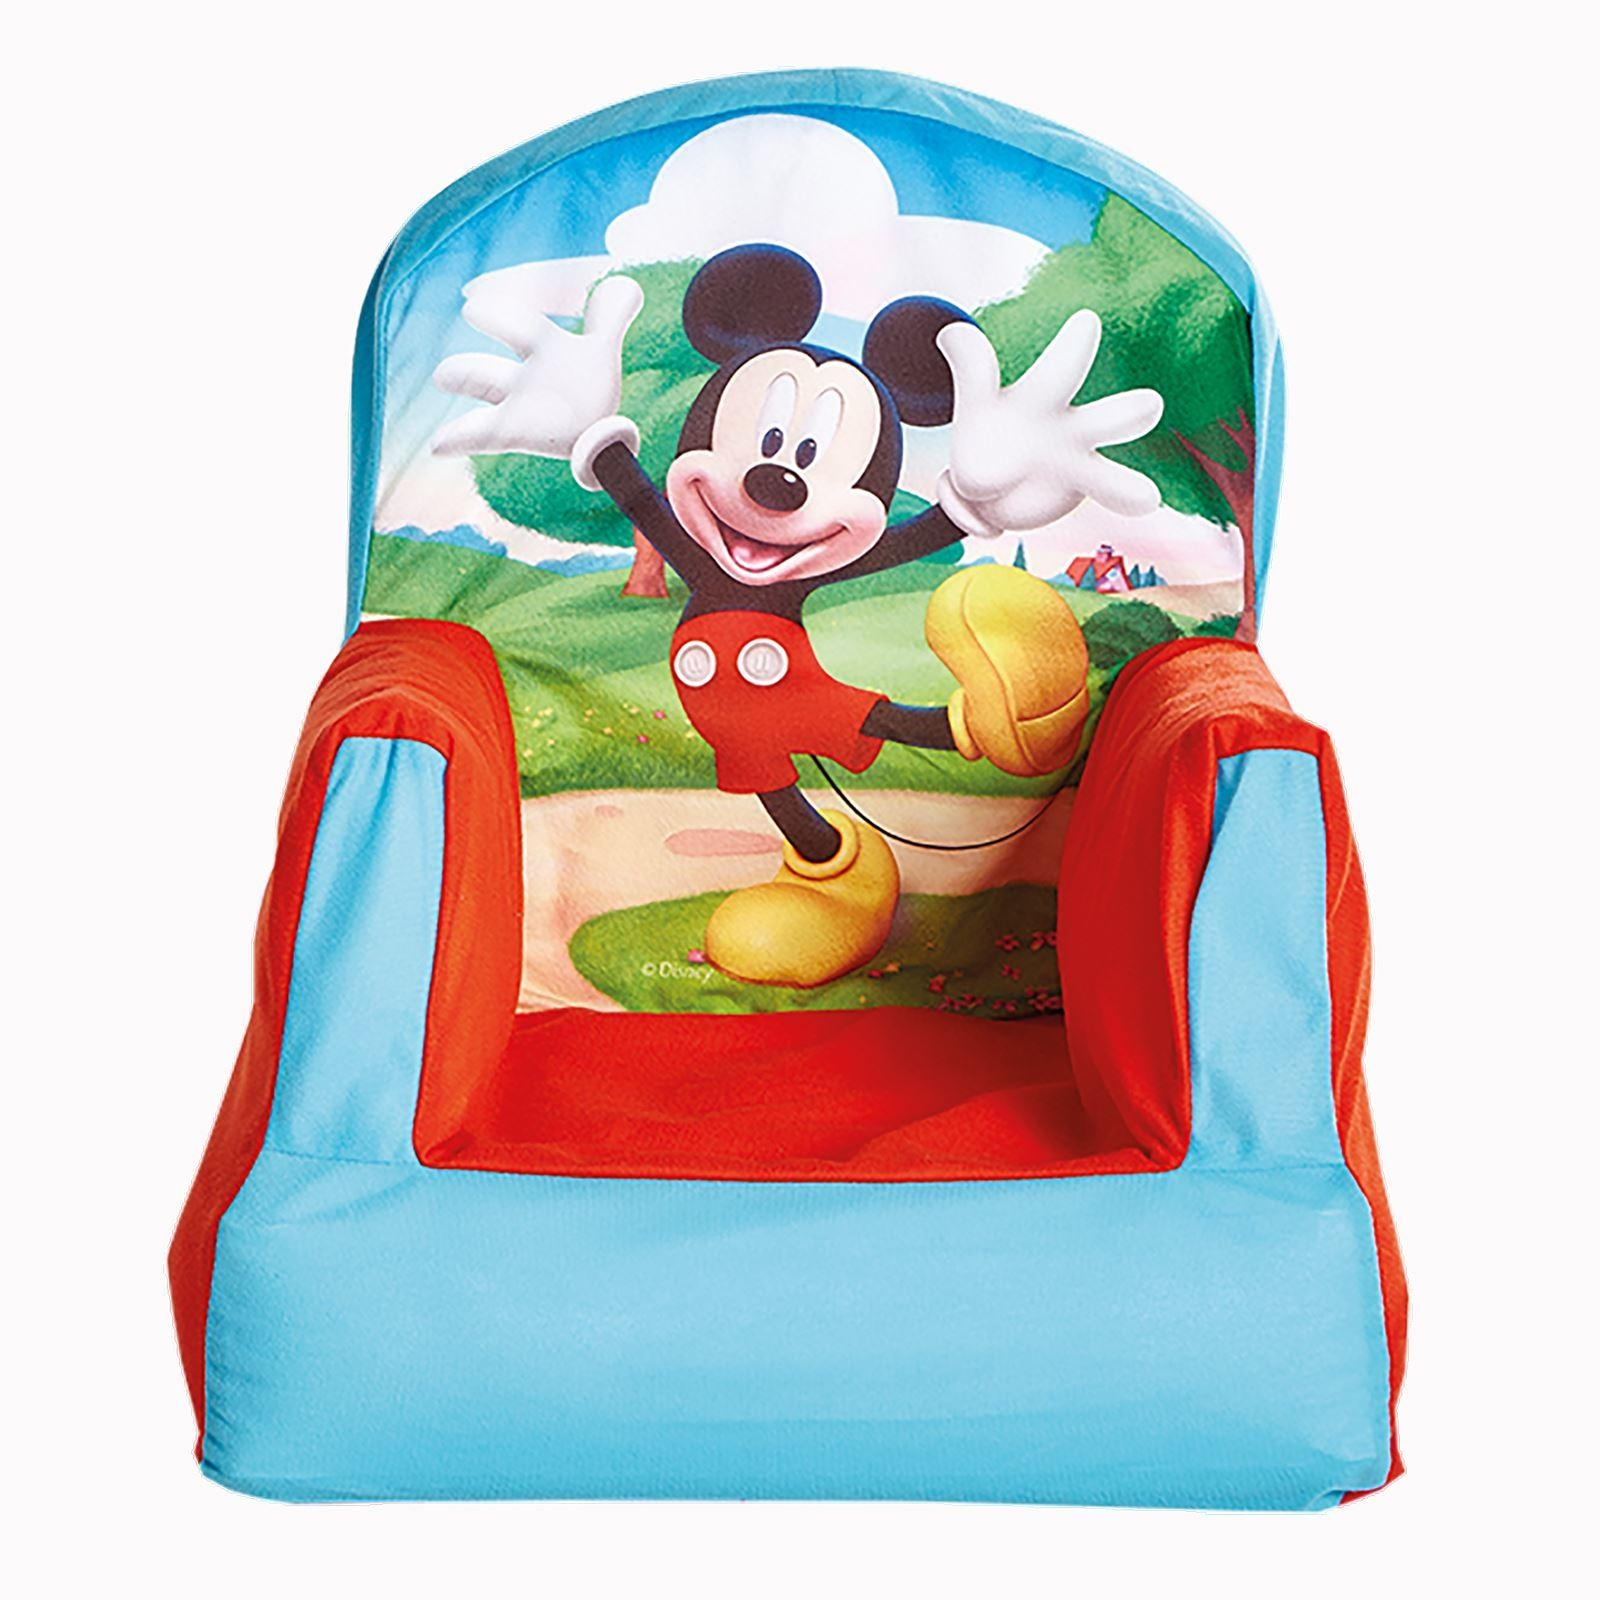 children s fold out sofa chair simmons leather reclining and loveseat 20+ choices of mickey mouse clubhouse couches | ideas